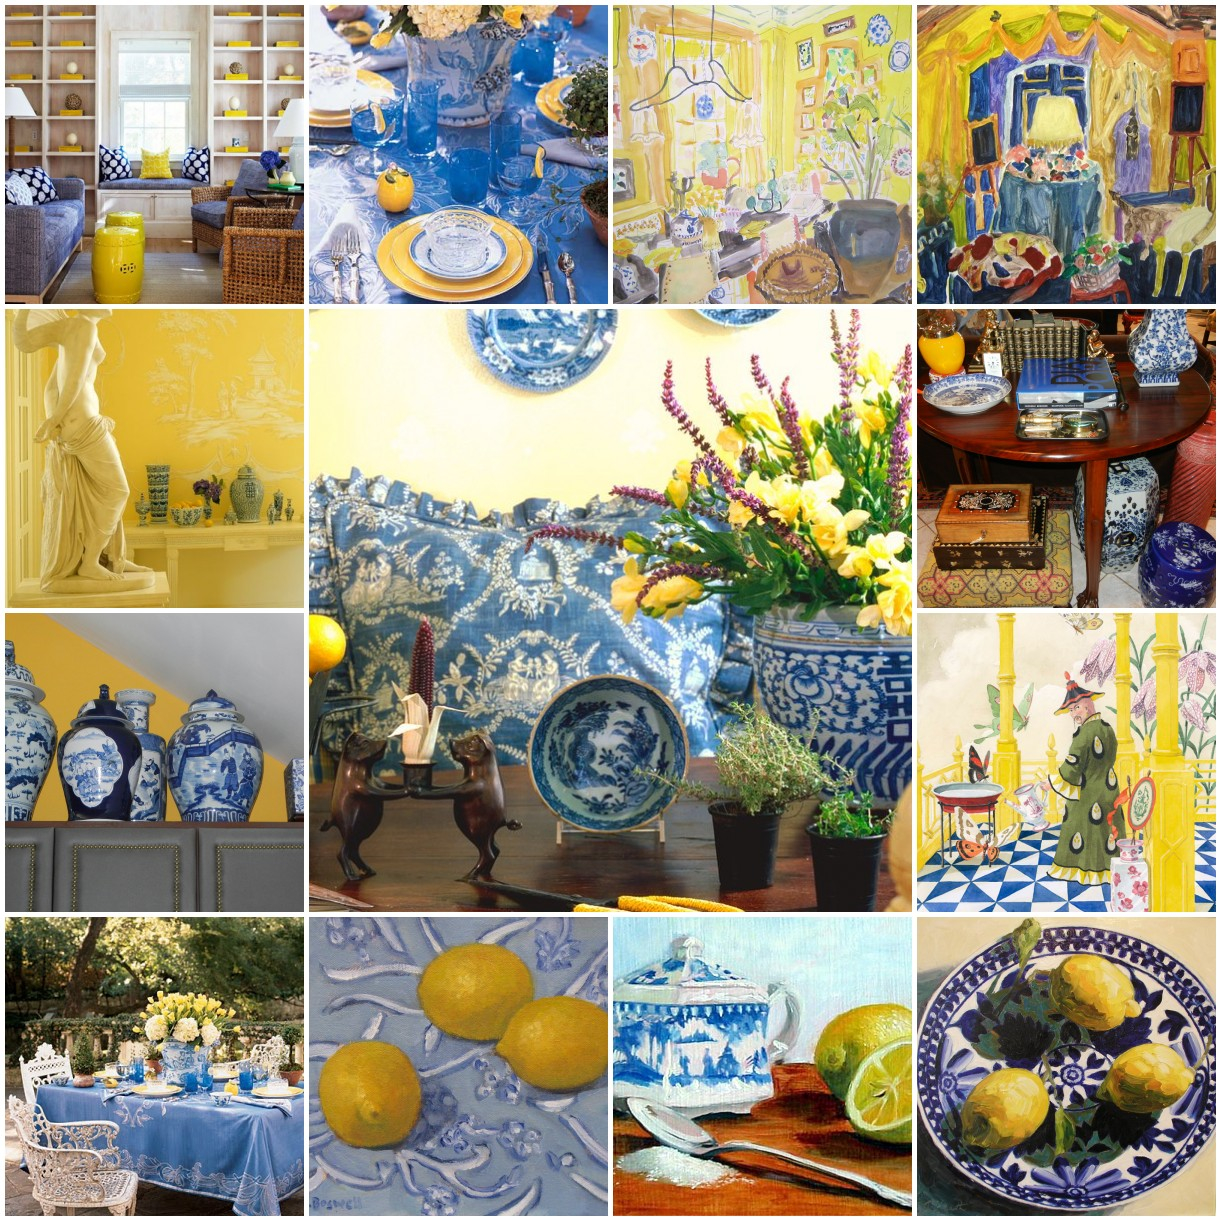 Kitchen Color Inspiration - 12 Shades Of Blue Cabinets